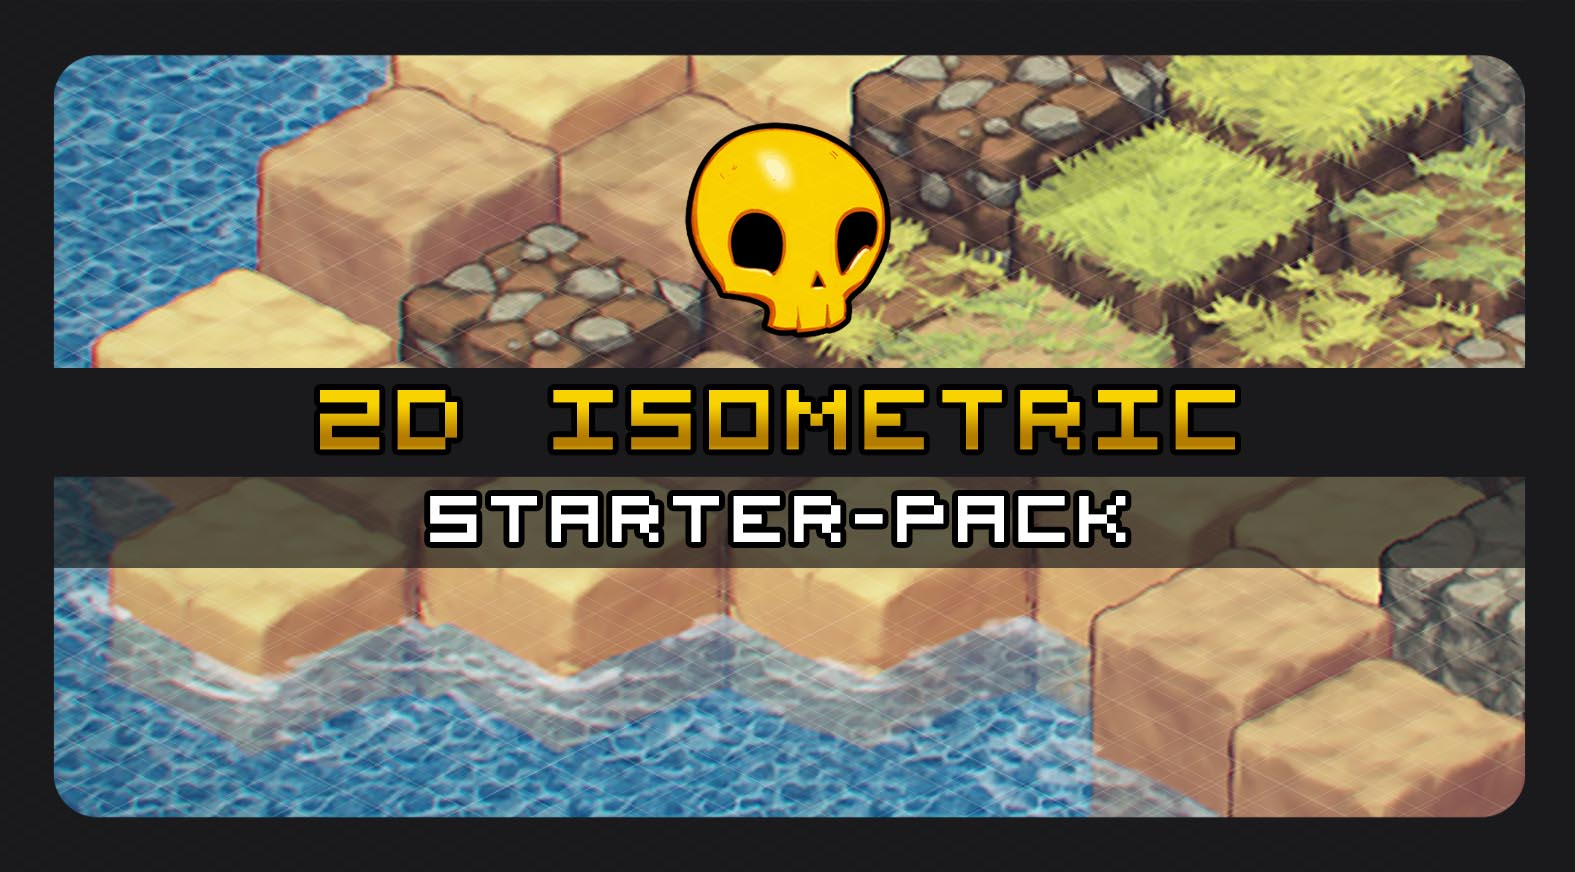 2D Isometric Tile Starter Pack